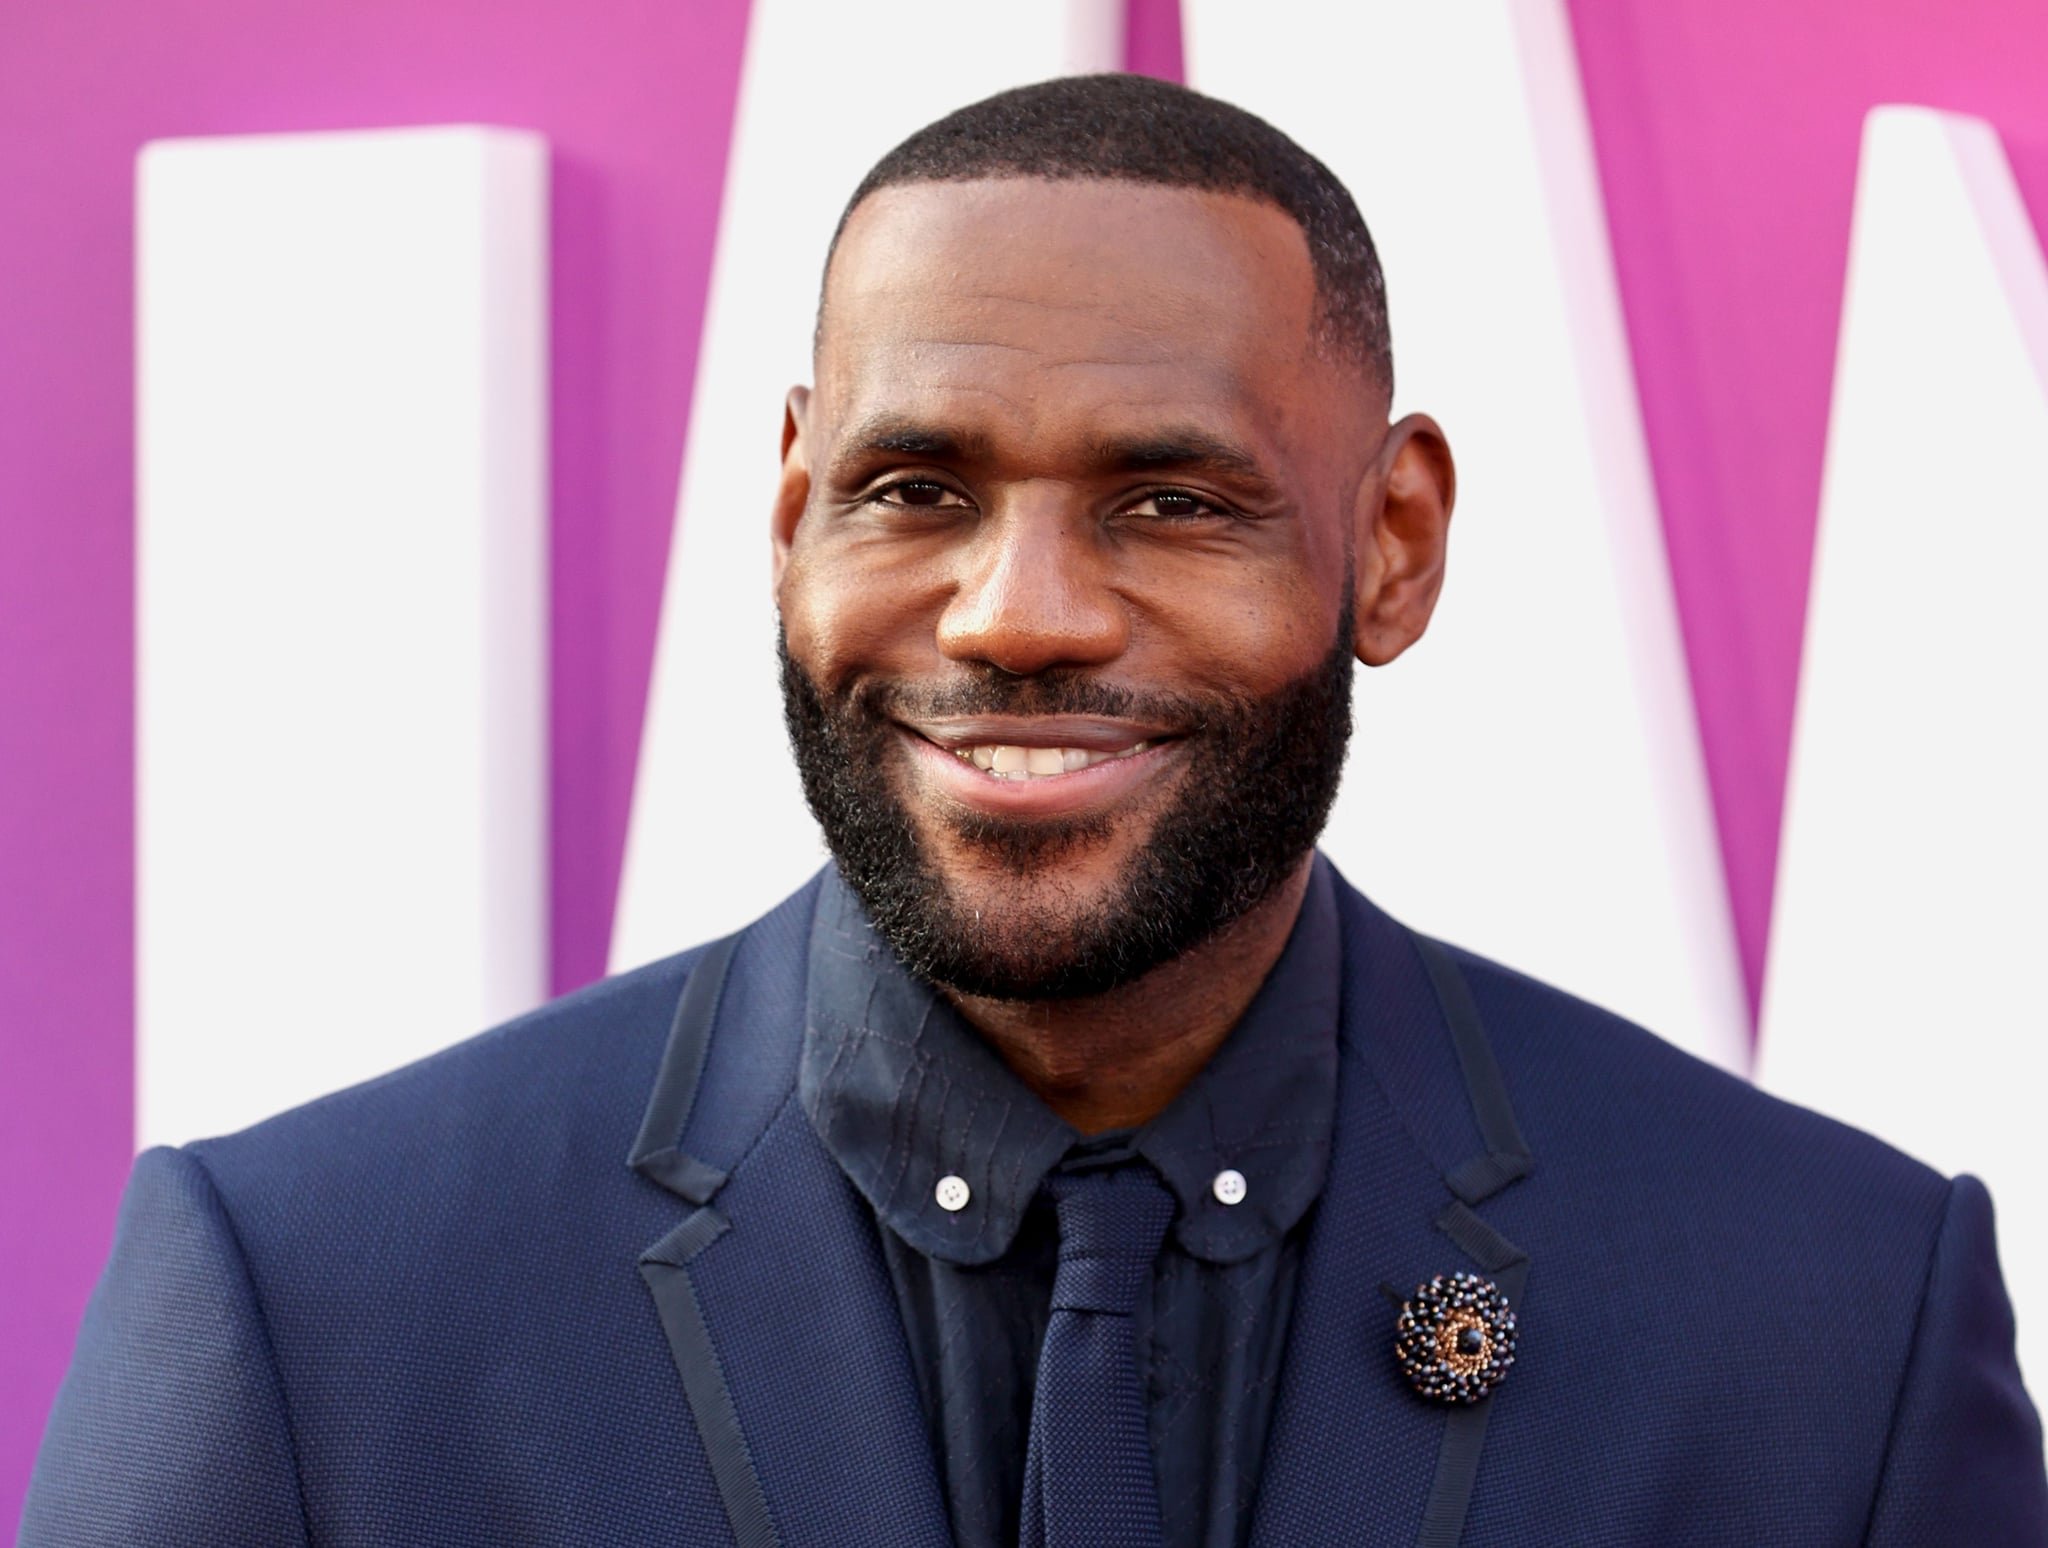 LOS ANGELES, CALIFORNIA - JULY 12: LeBron James attends the premiere of Warner Bros